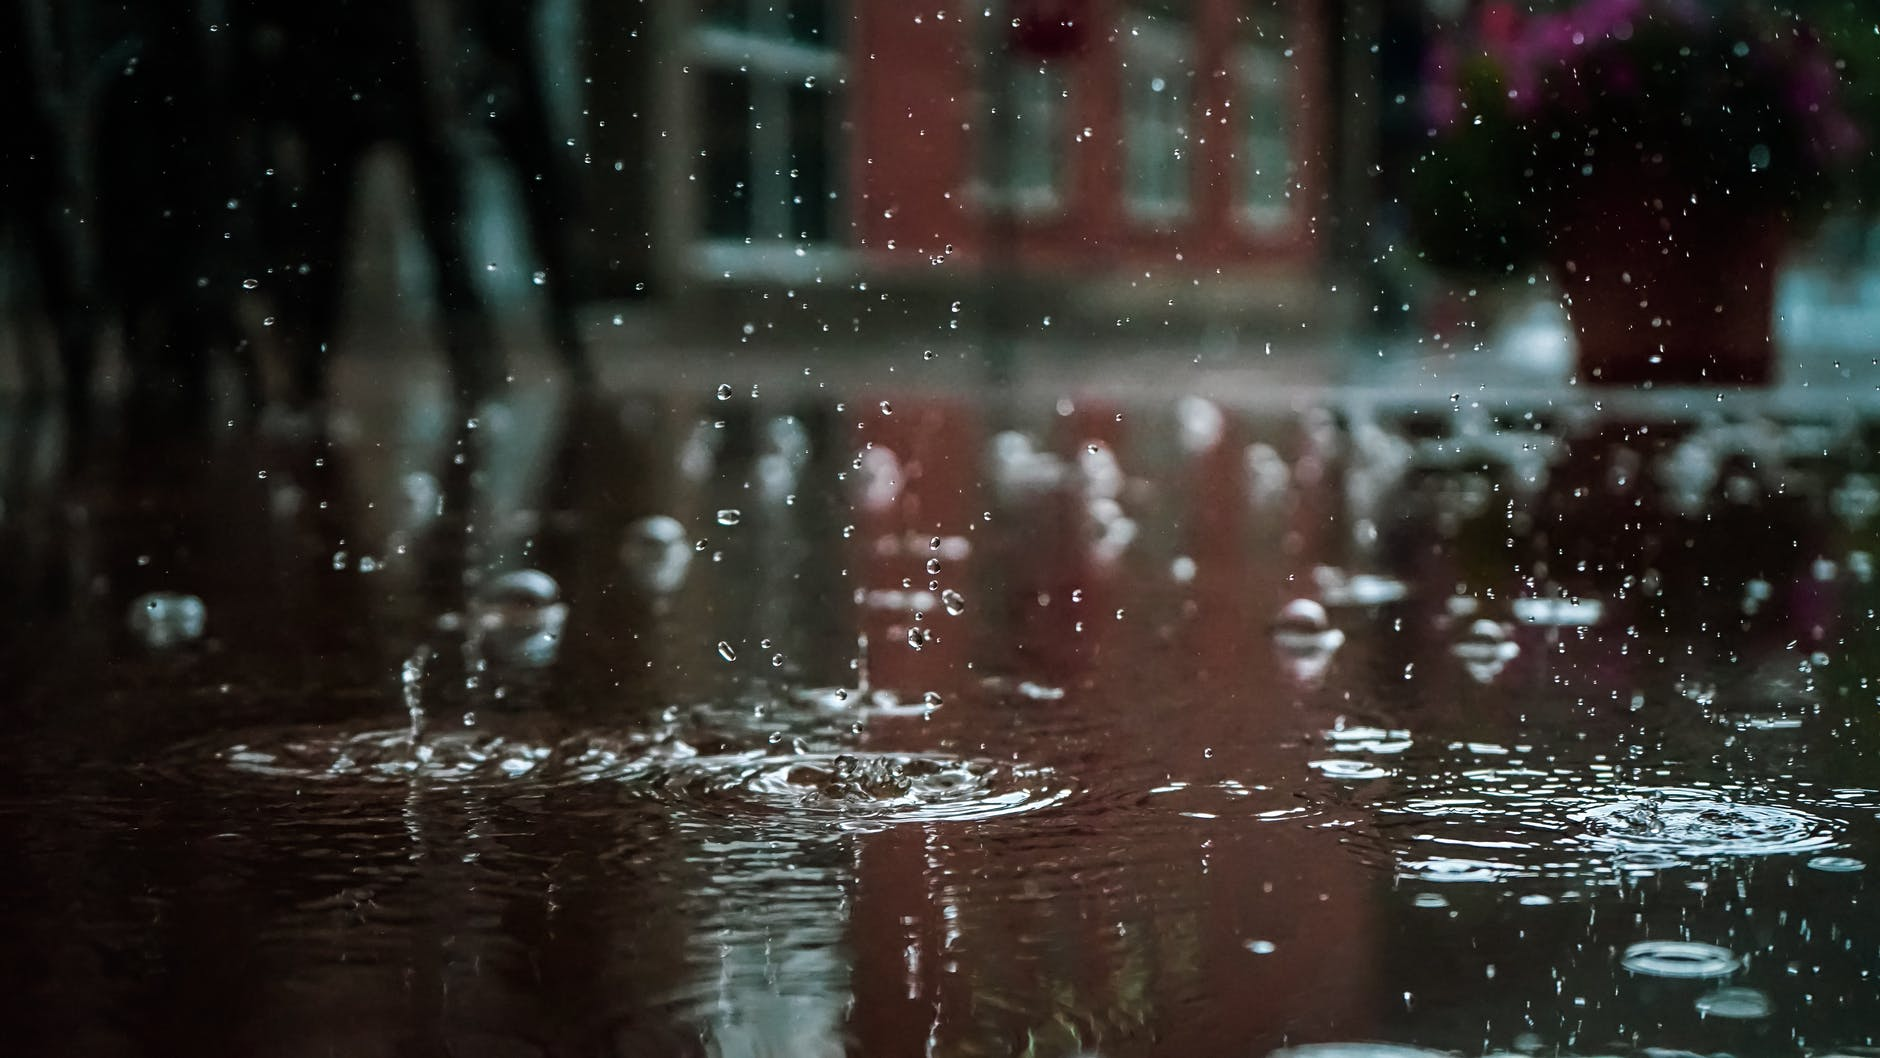 Raindrops are remarkably similar helps to identify the different environments